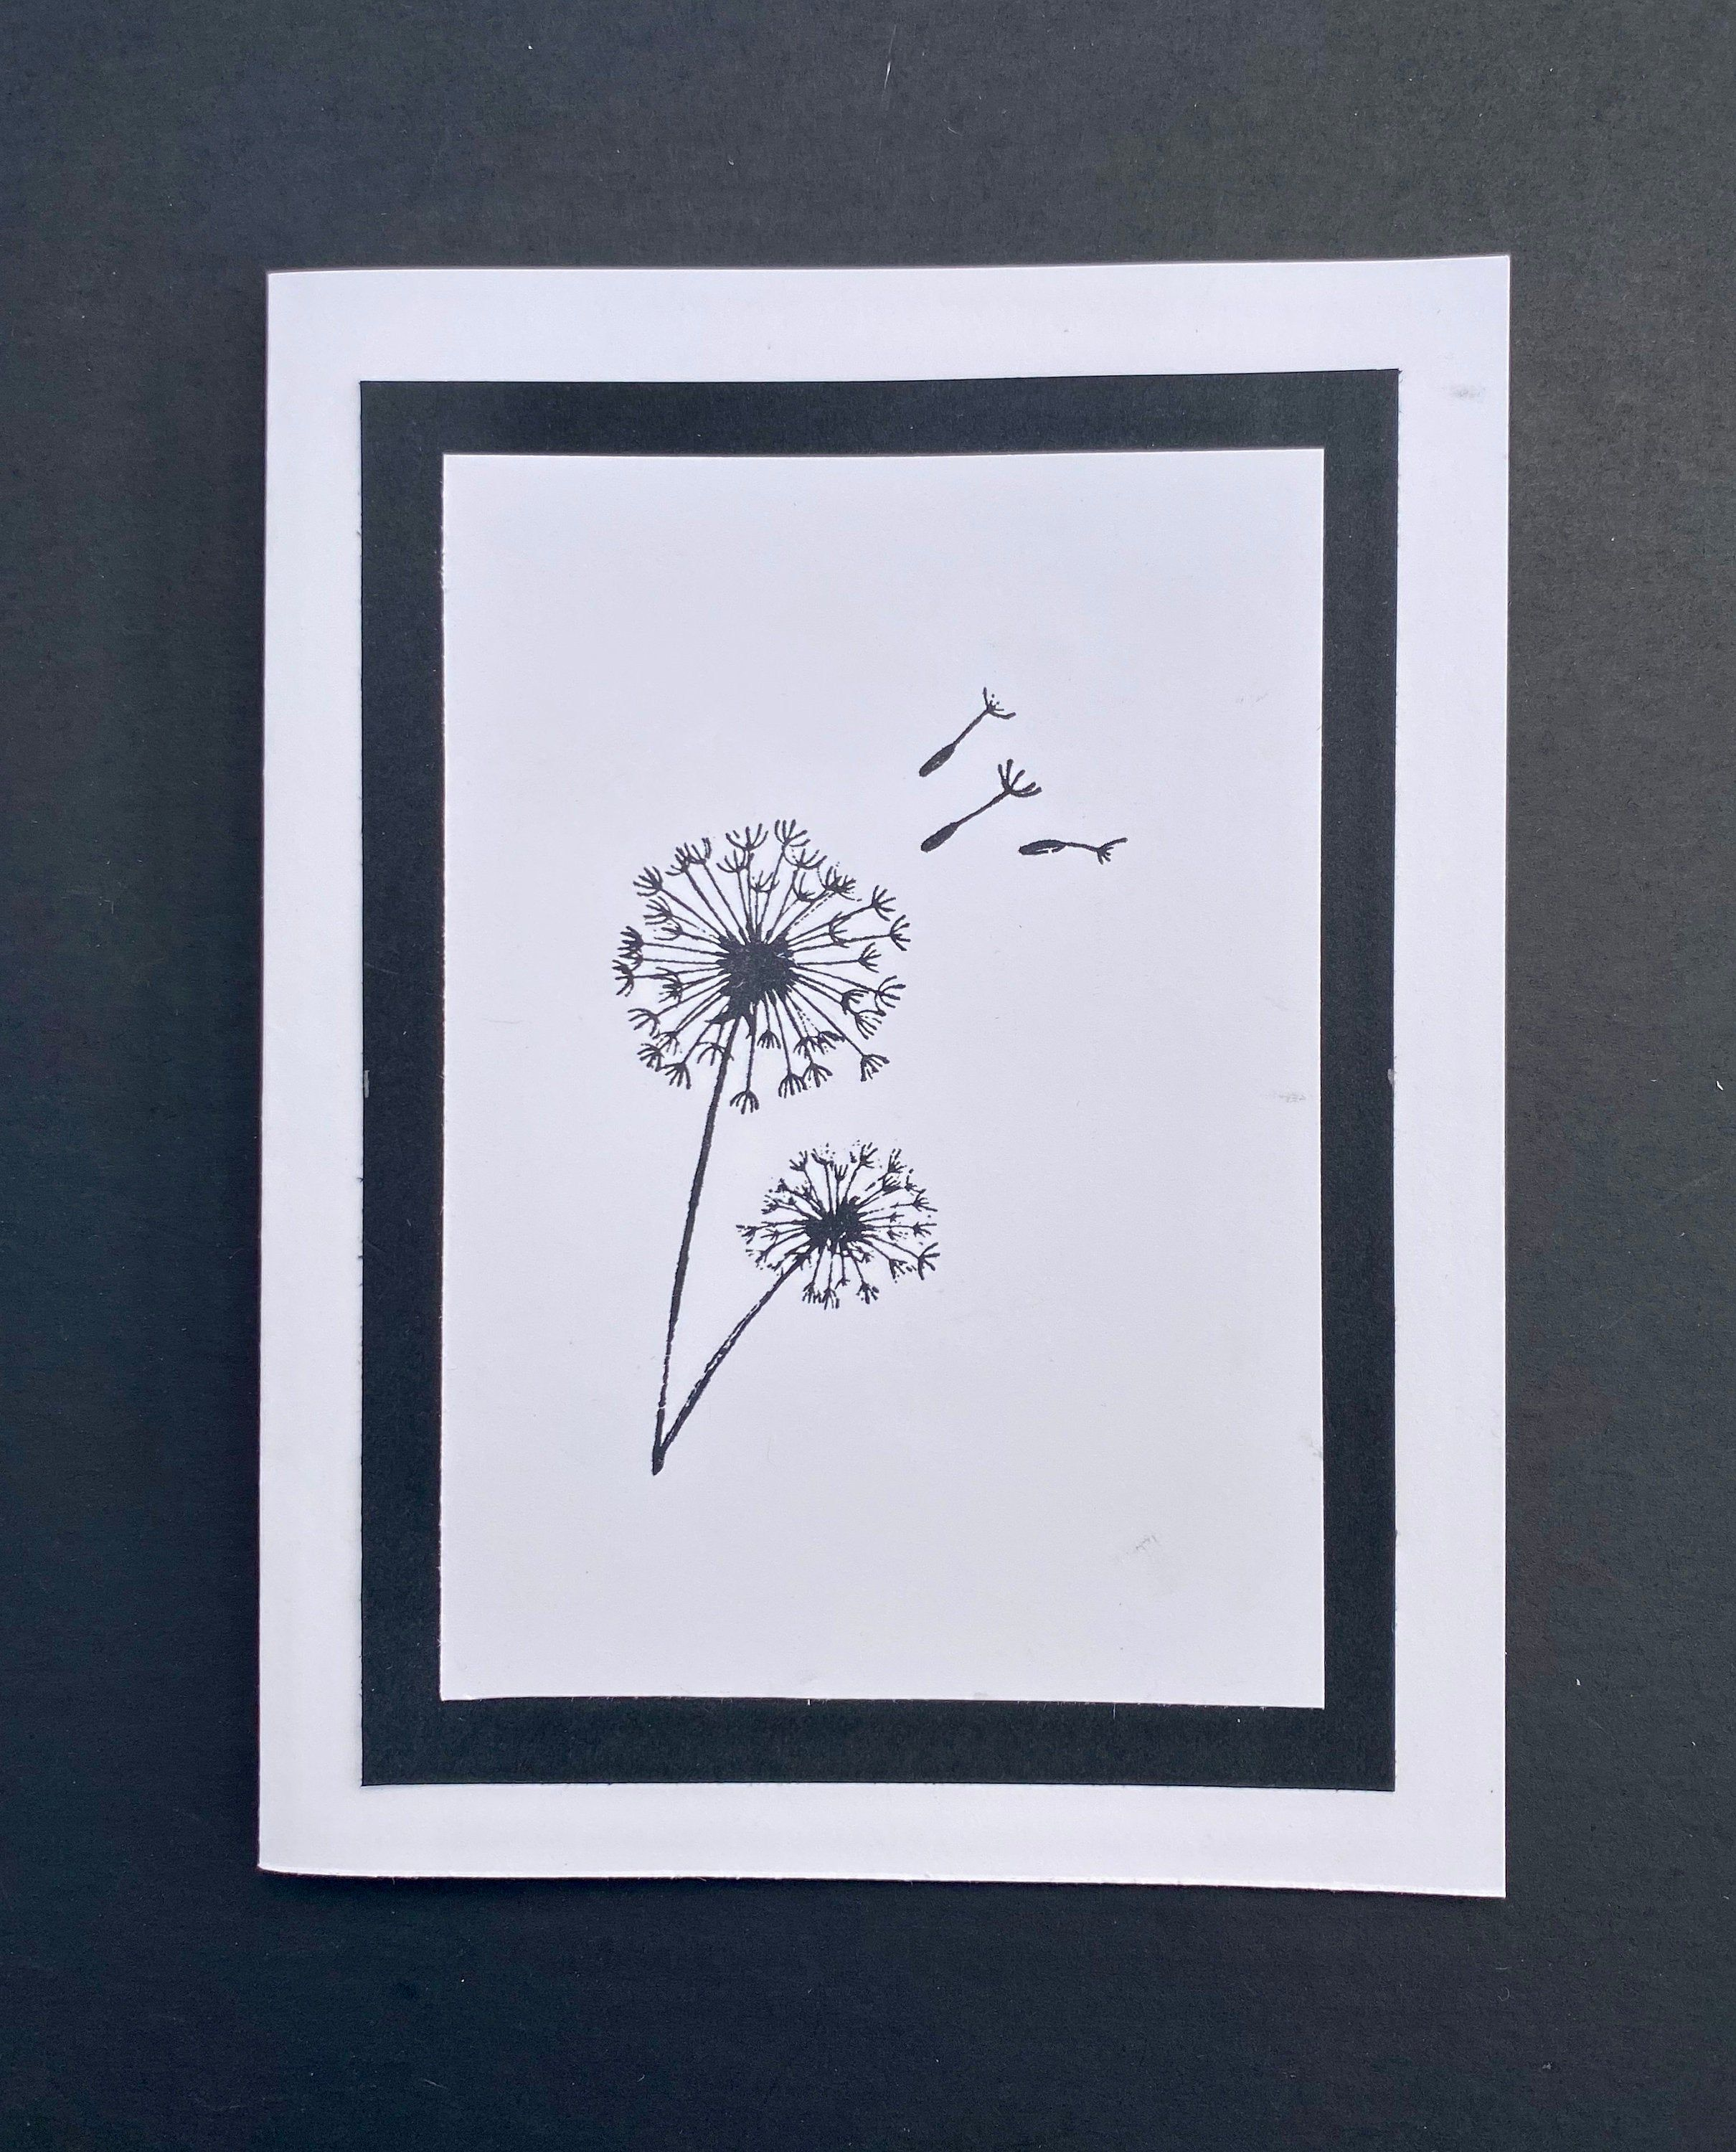 Dandelion Note Cards Black And White Blank Note Cards With Etsy In 2021 Note Card Gifts Blank Note Cards Note Cards Handmade